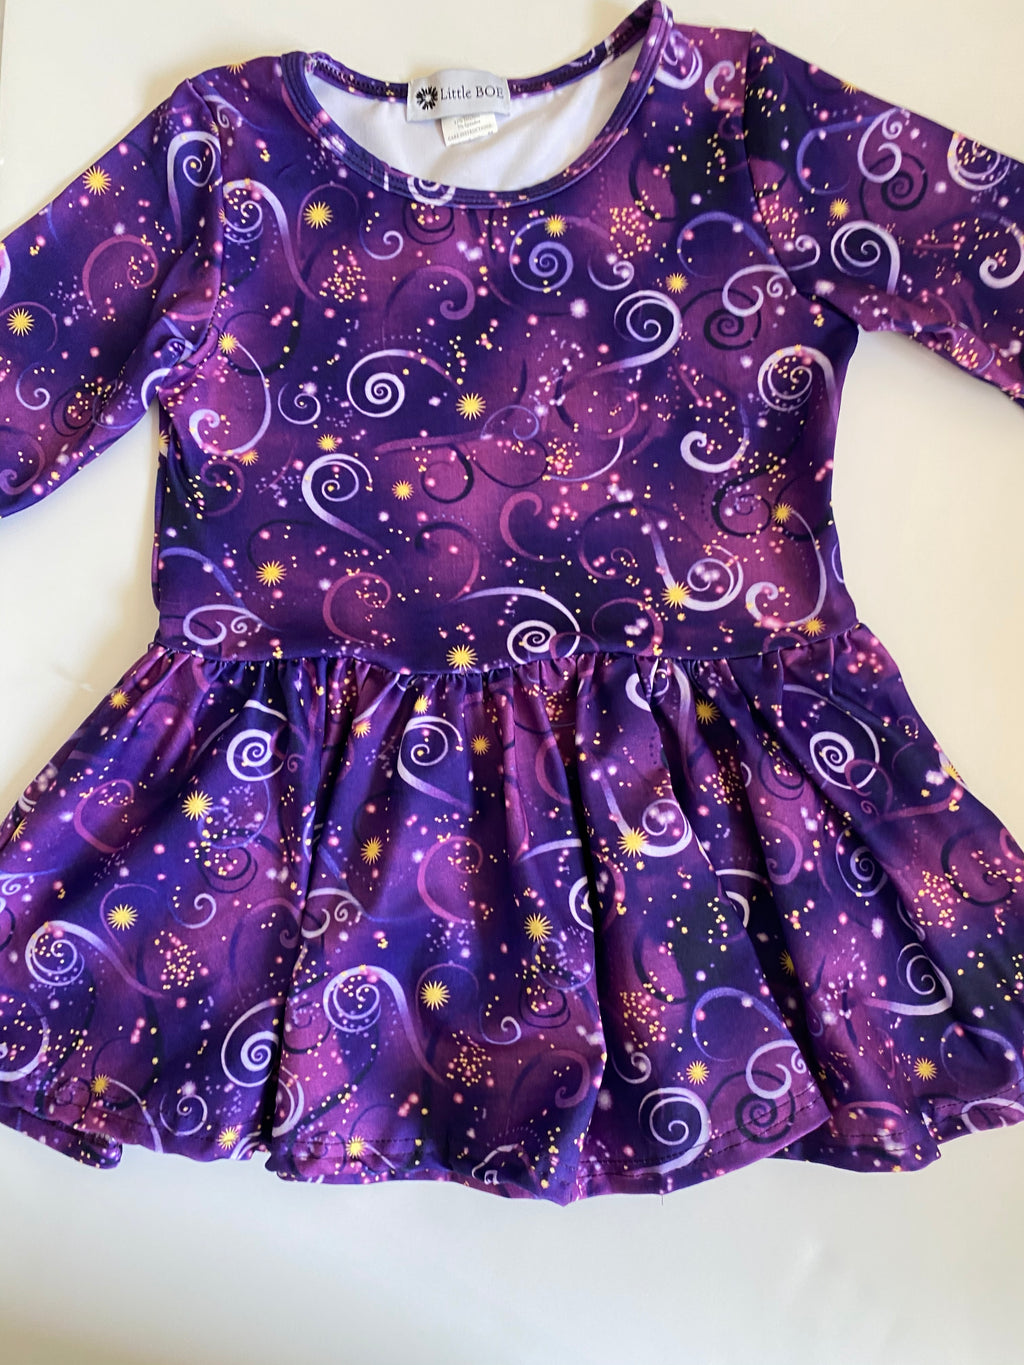 Starry Peplum top